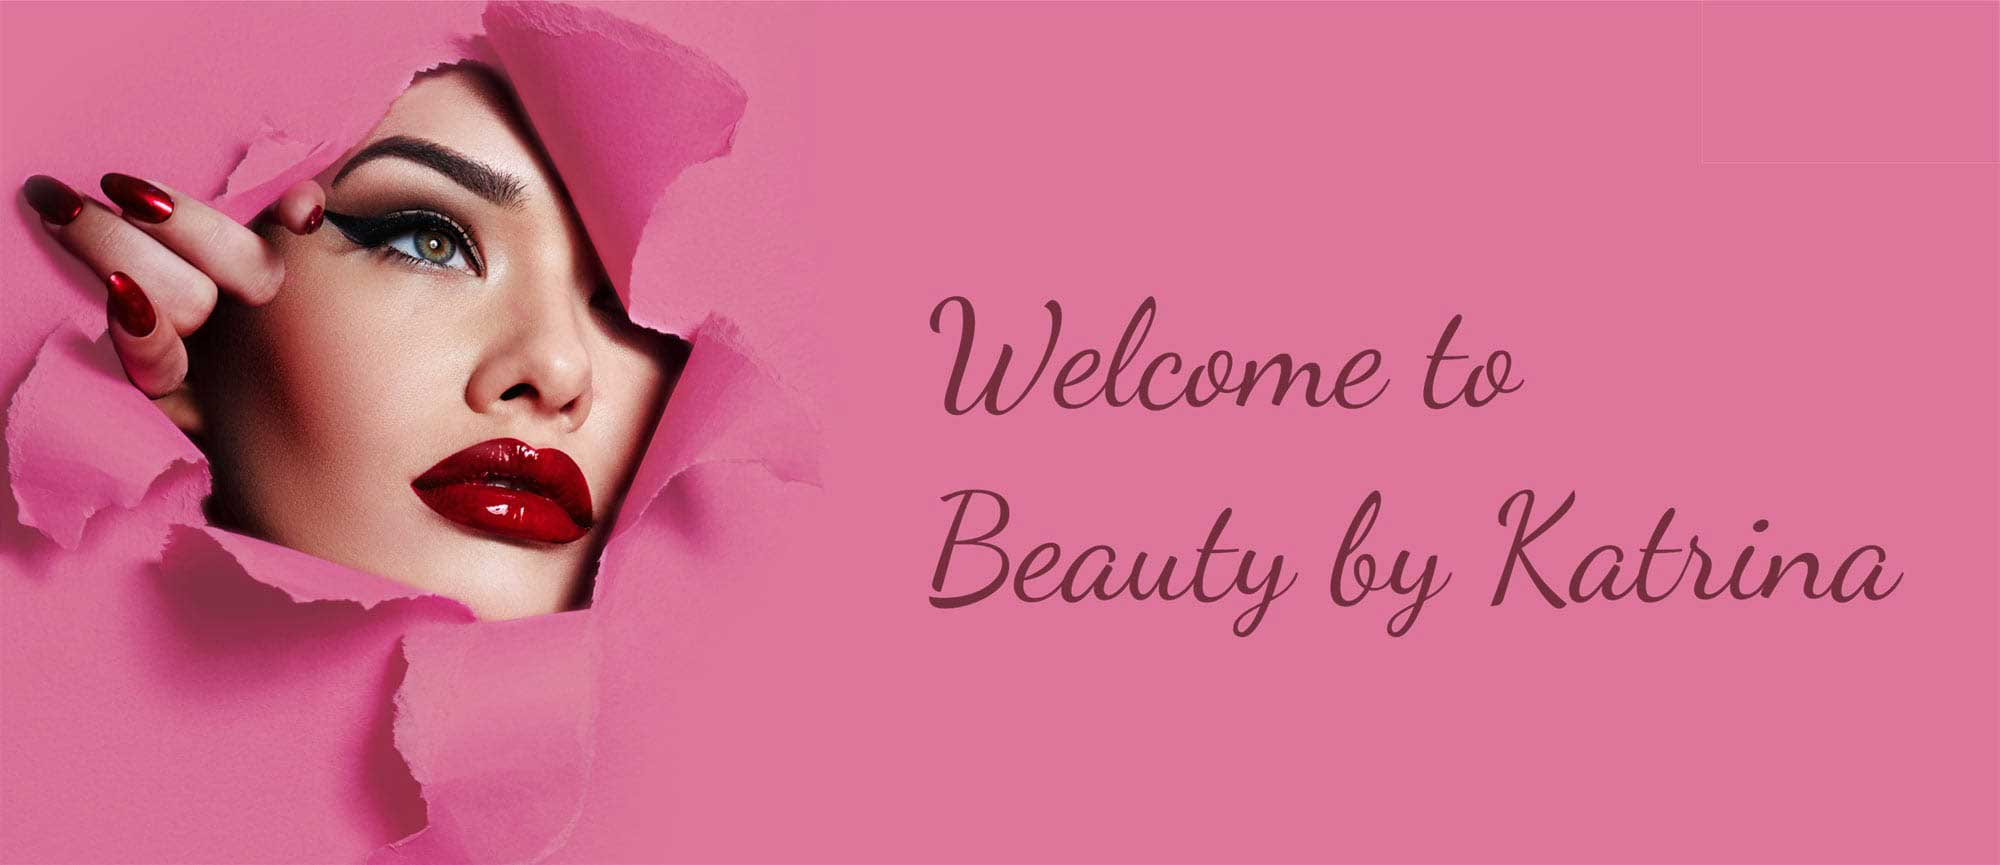 welcome to Beauty by Katrina home banner